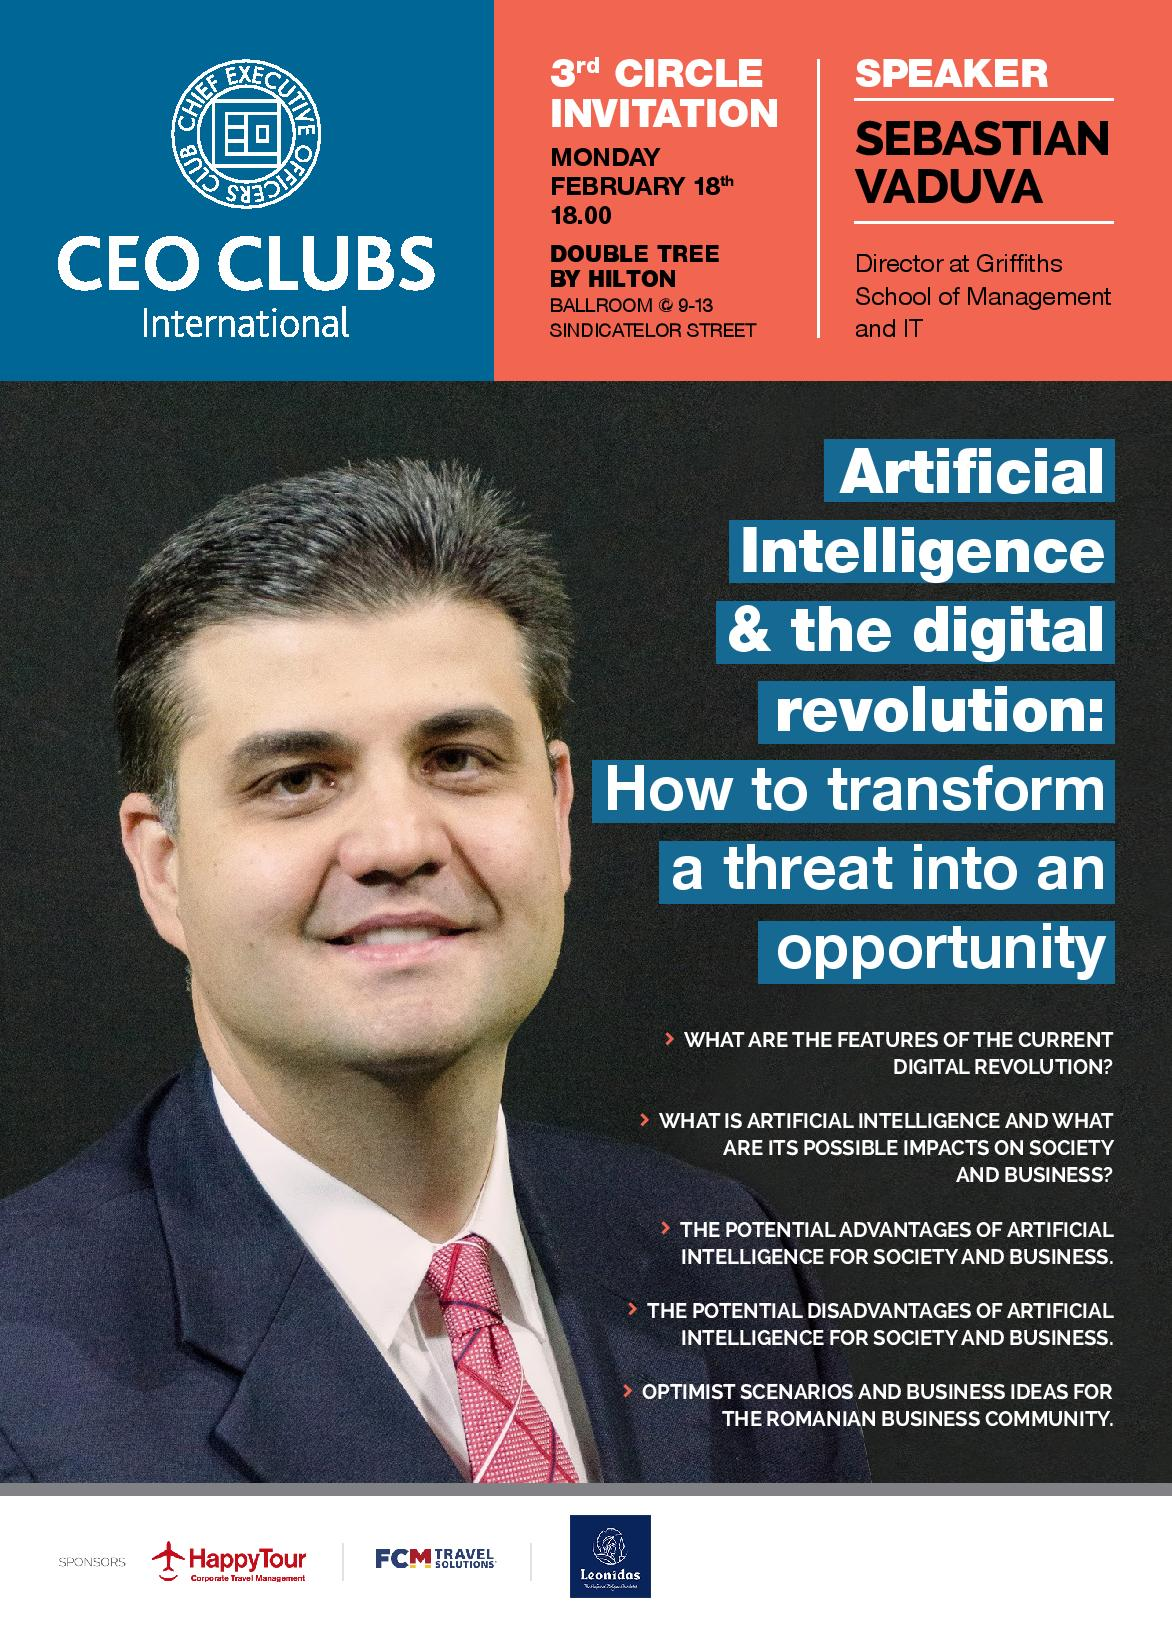 3rd Circle: Artificial Intelligence & the digital revolution: How to transform a threat into an opportunity